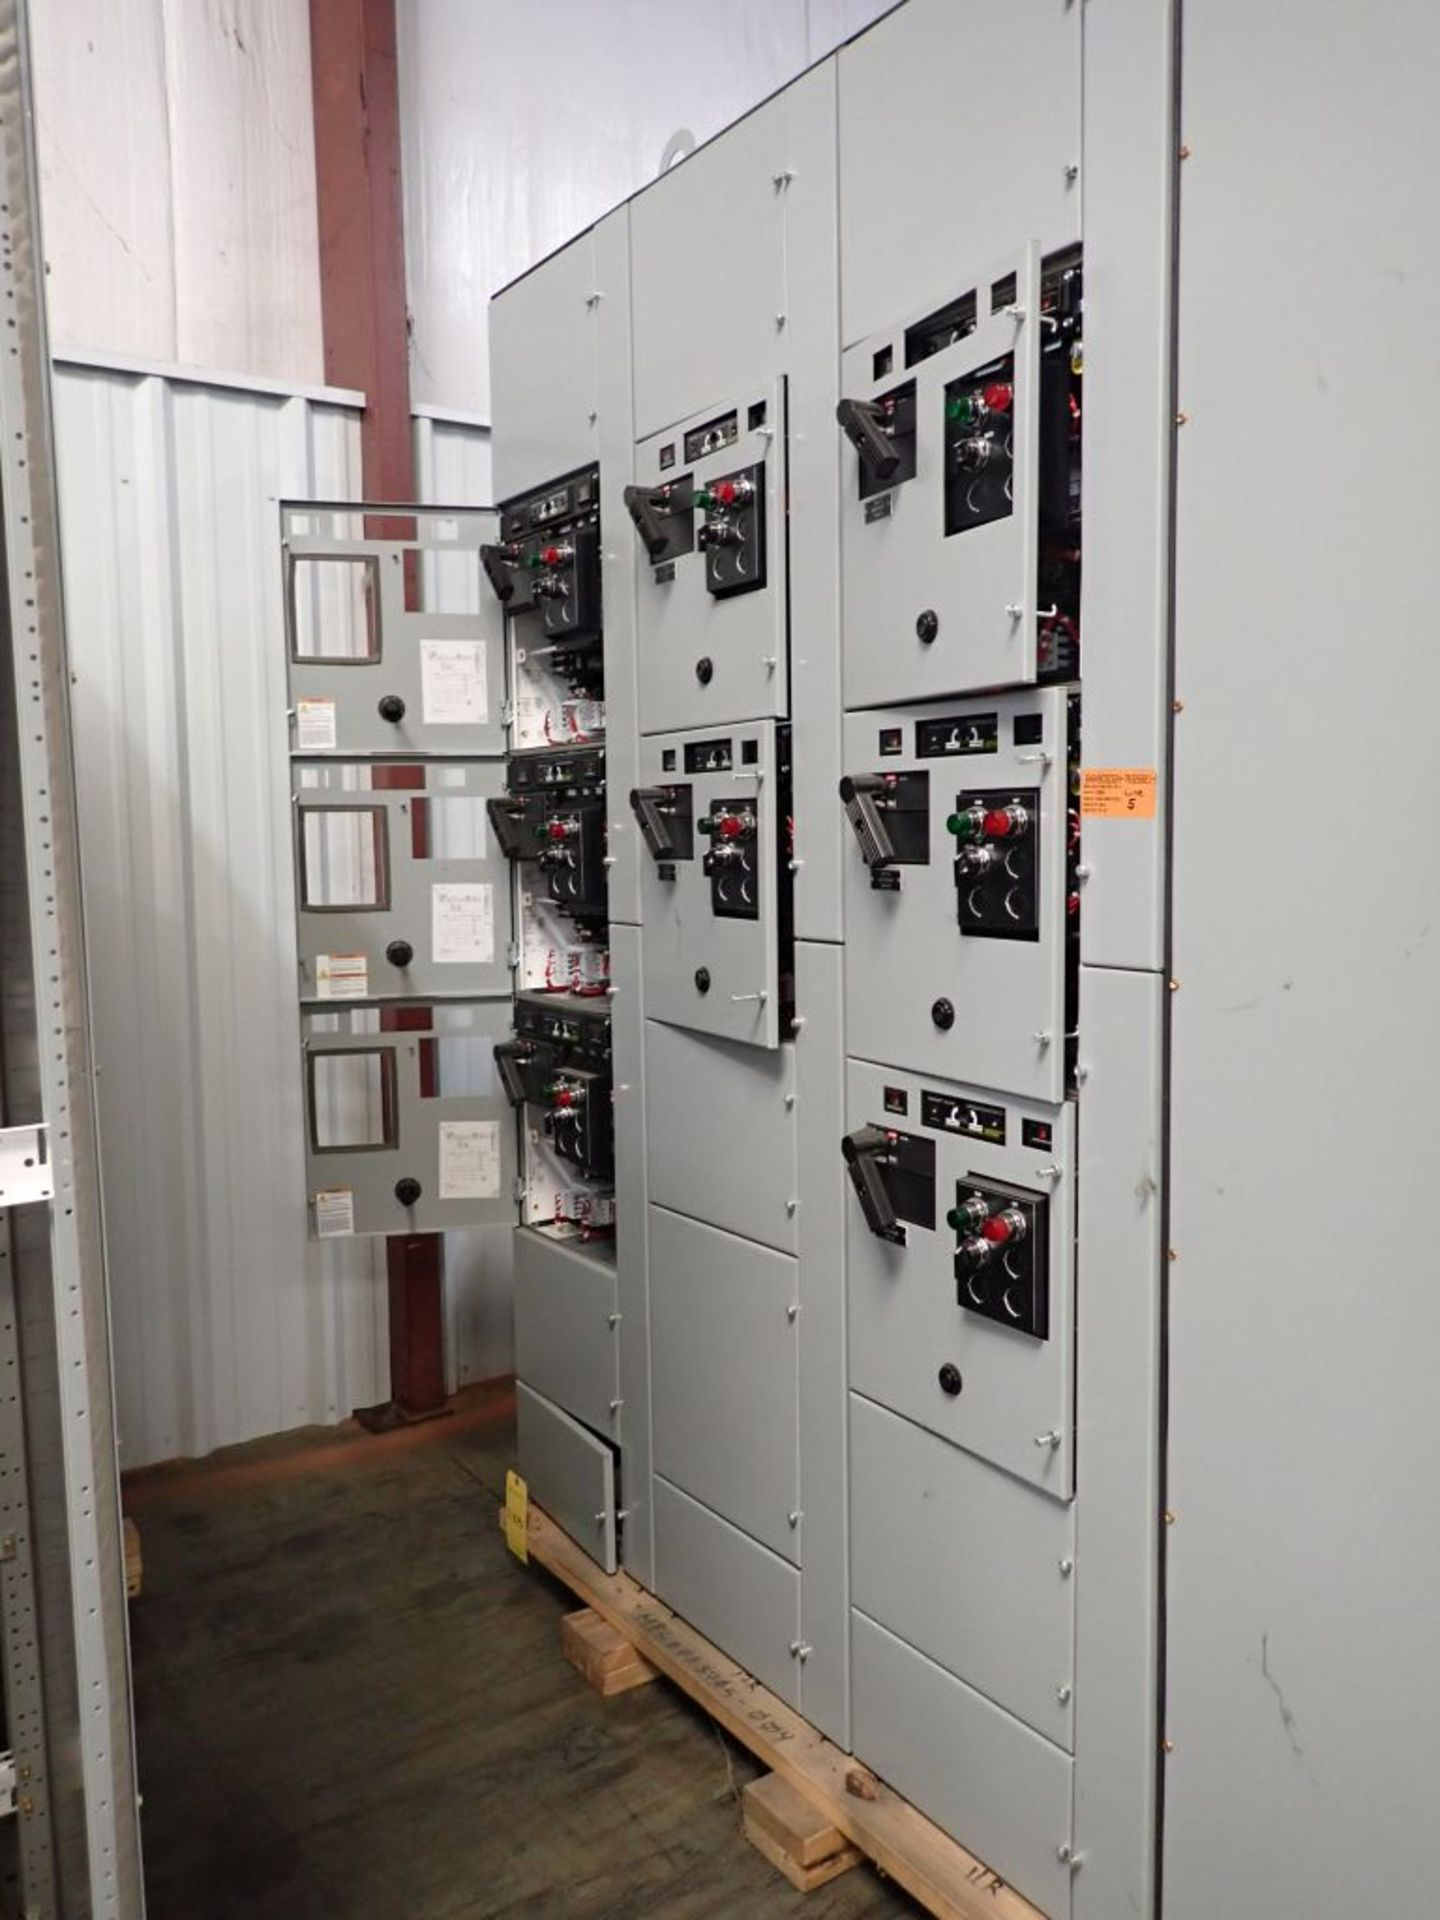 Eaton Freedom 2100 Series Motor Control Center | (11) F206-30A-10HP; (5) F206-15A-10HP; (1) SVX900- - Image 7 of 102